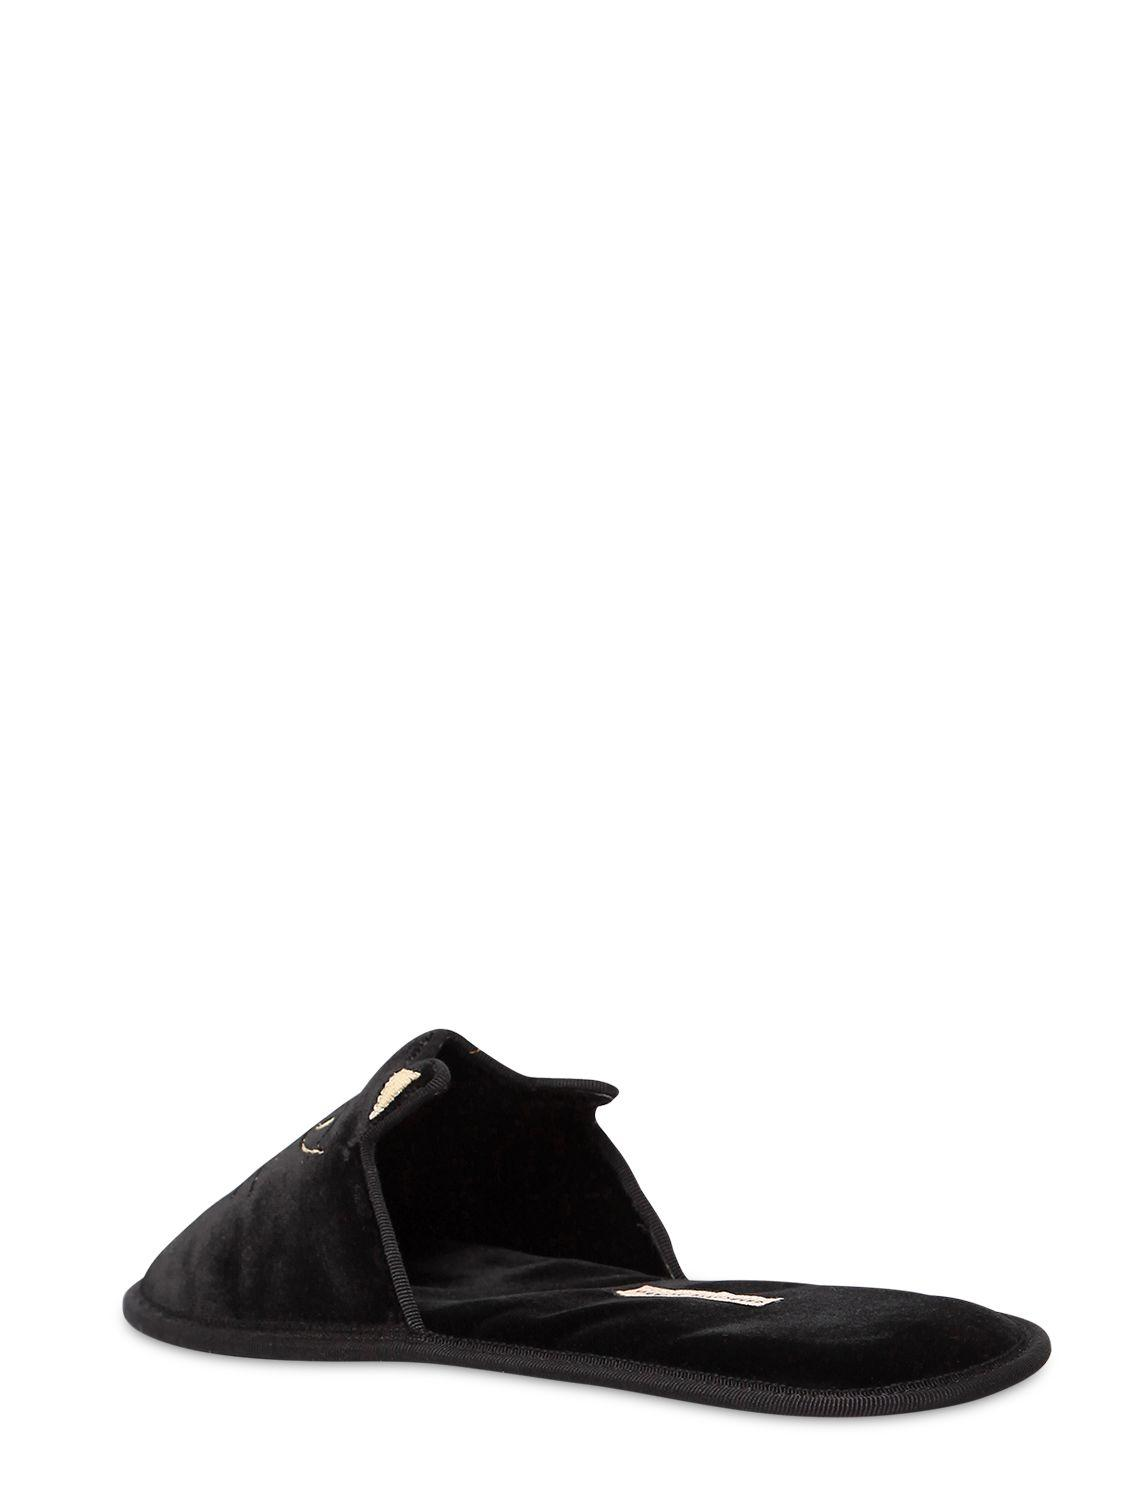 Charlotte Olympia KITTY HOUSE CATS VELVET SLIPPERS nDihE